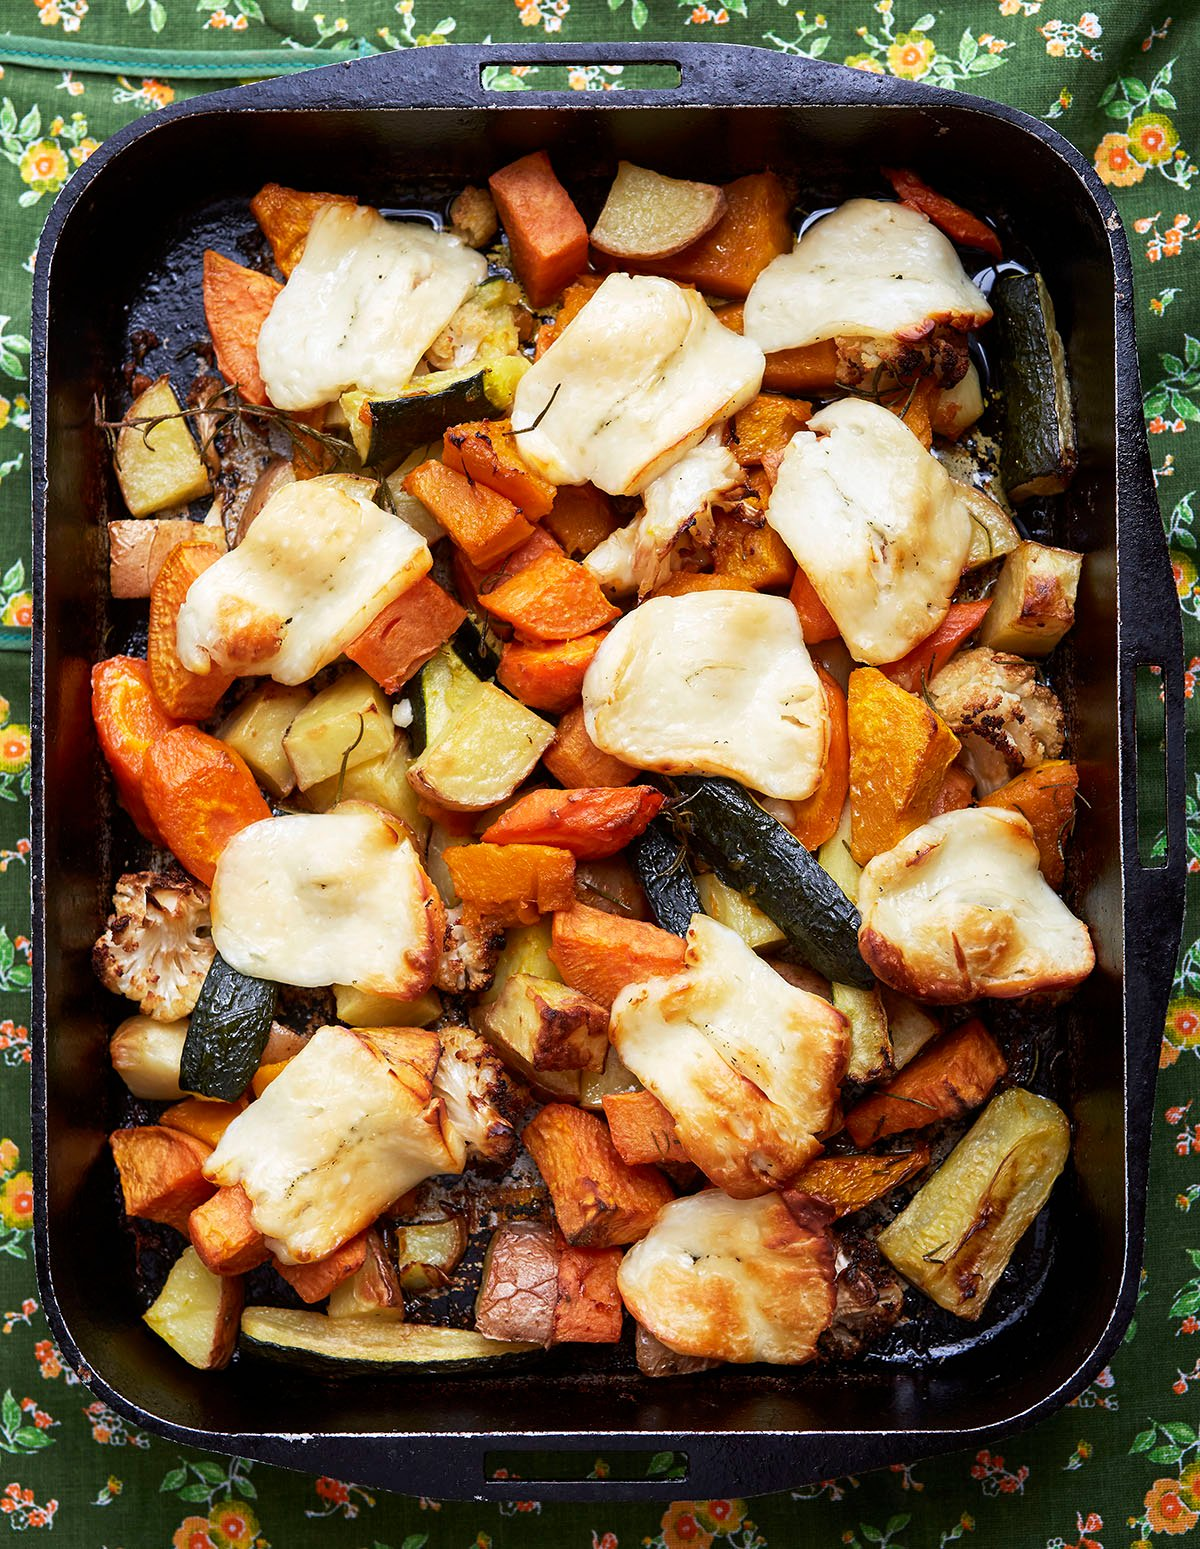 One-Pot Baked Veggies and Halloumi